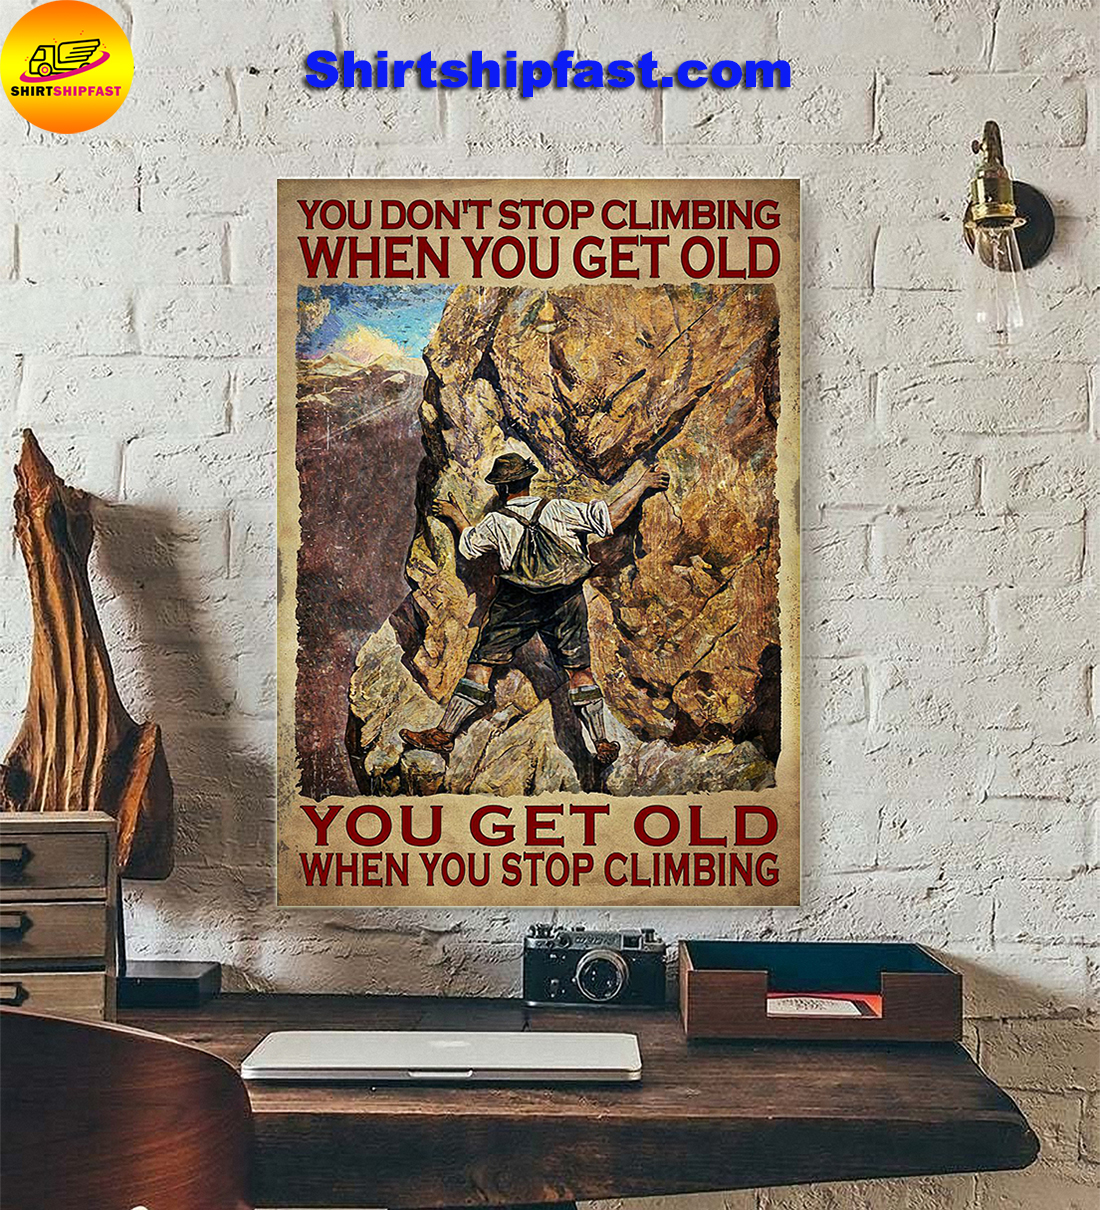 Man You don't stop climbing when you get old poster